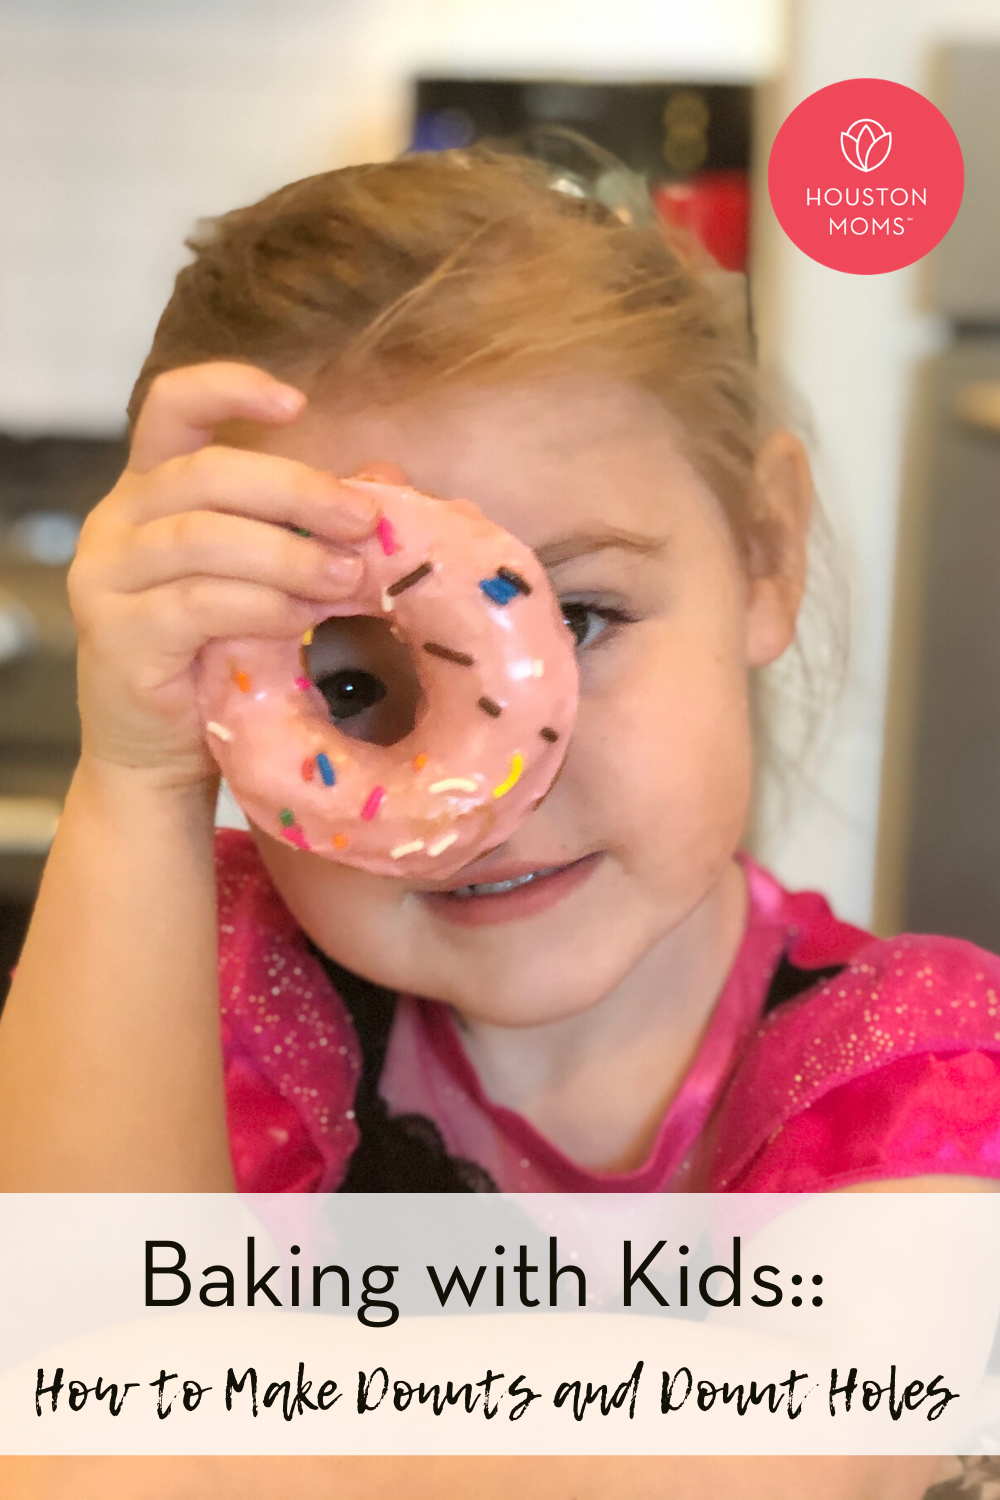 "Houston Moms ""Baking with Kids:: How to Make Donuts and Donut Holes"" #houstonmoms #houstonmomsblog #momsaroundhouston"